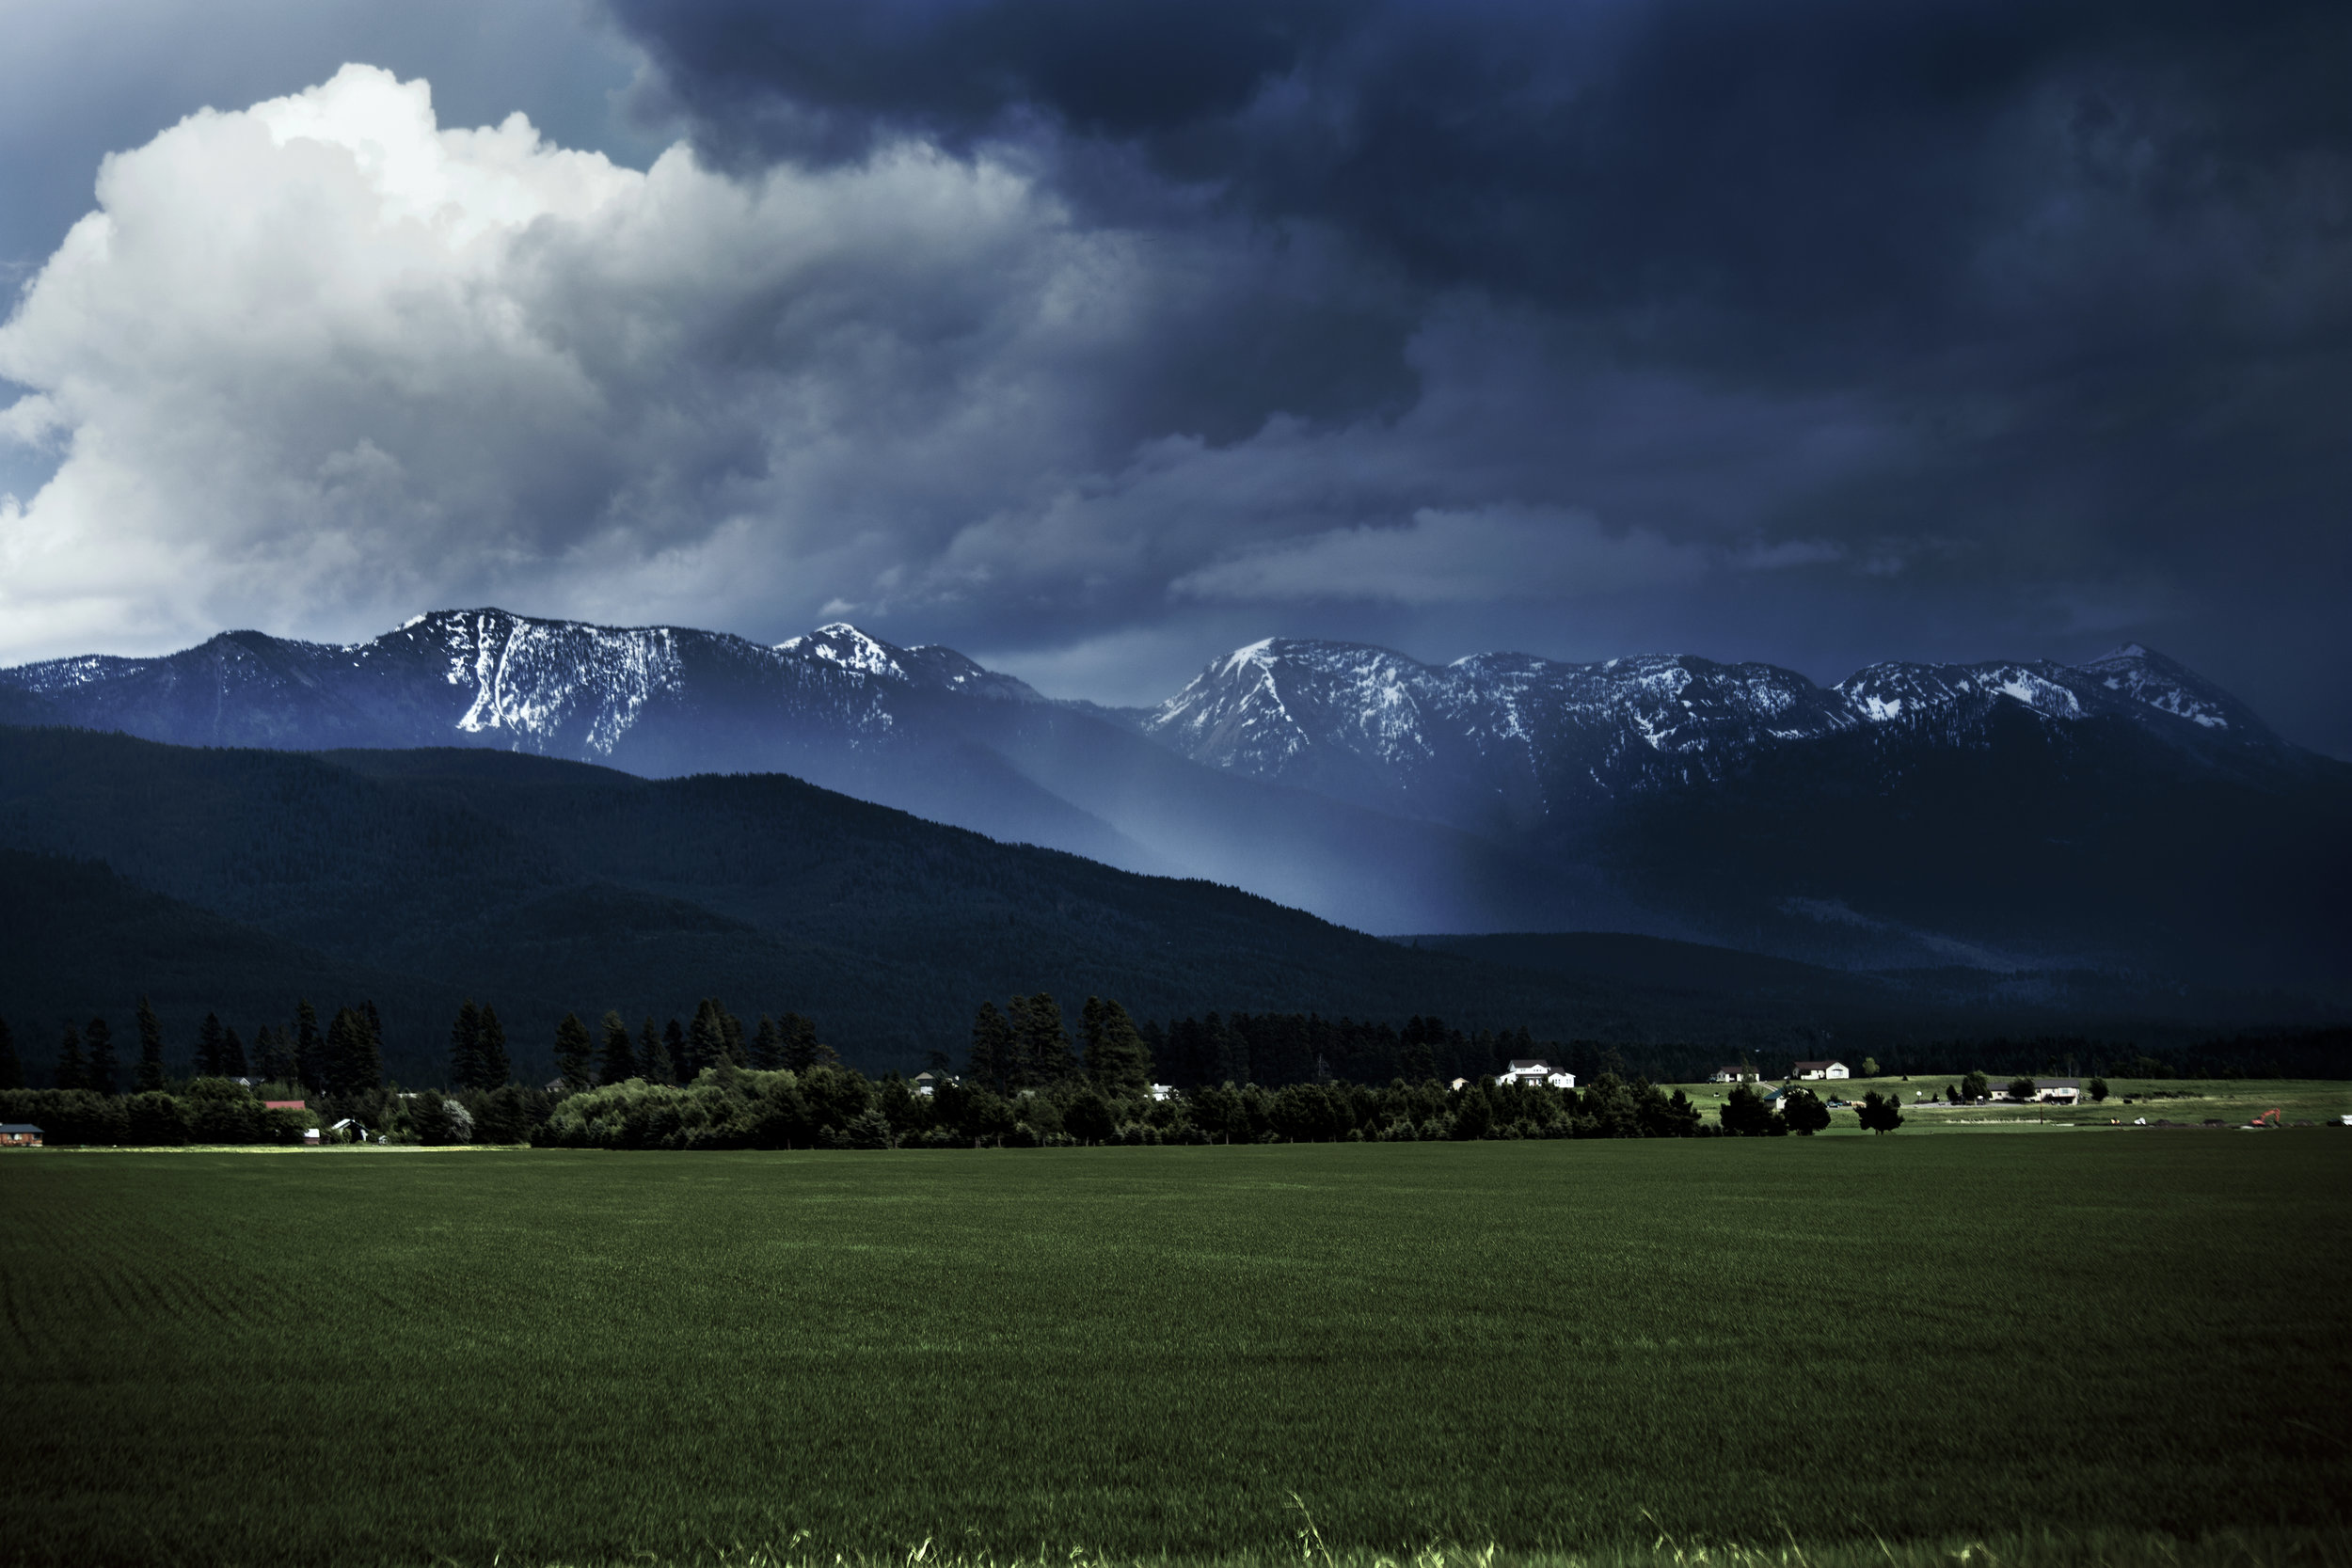 Mountain rainNEW SRGB.jpg